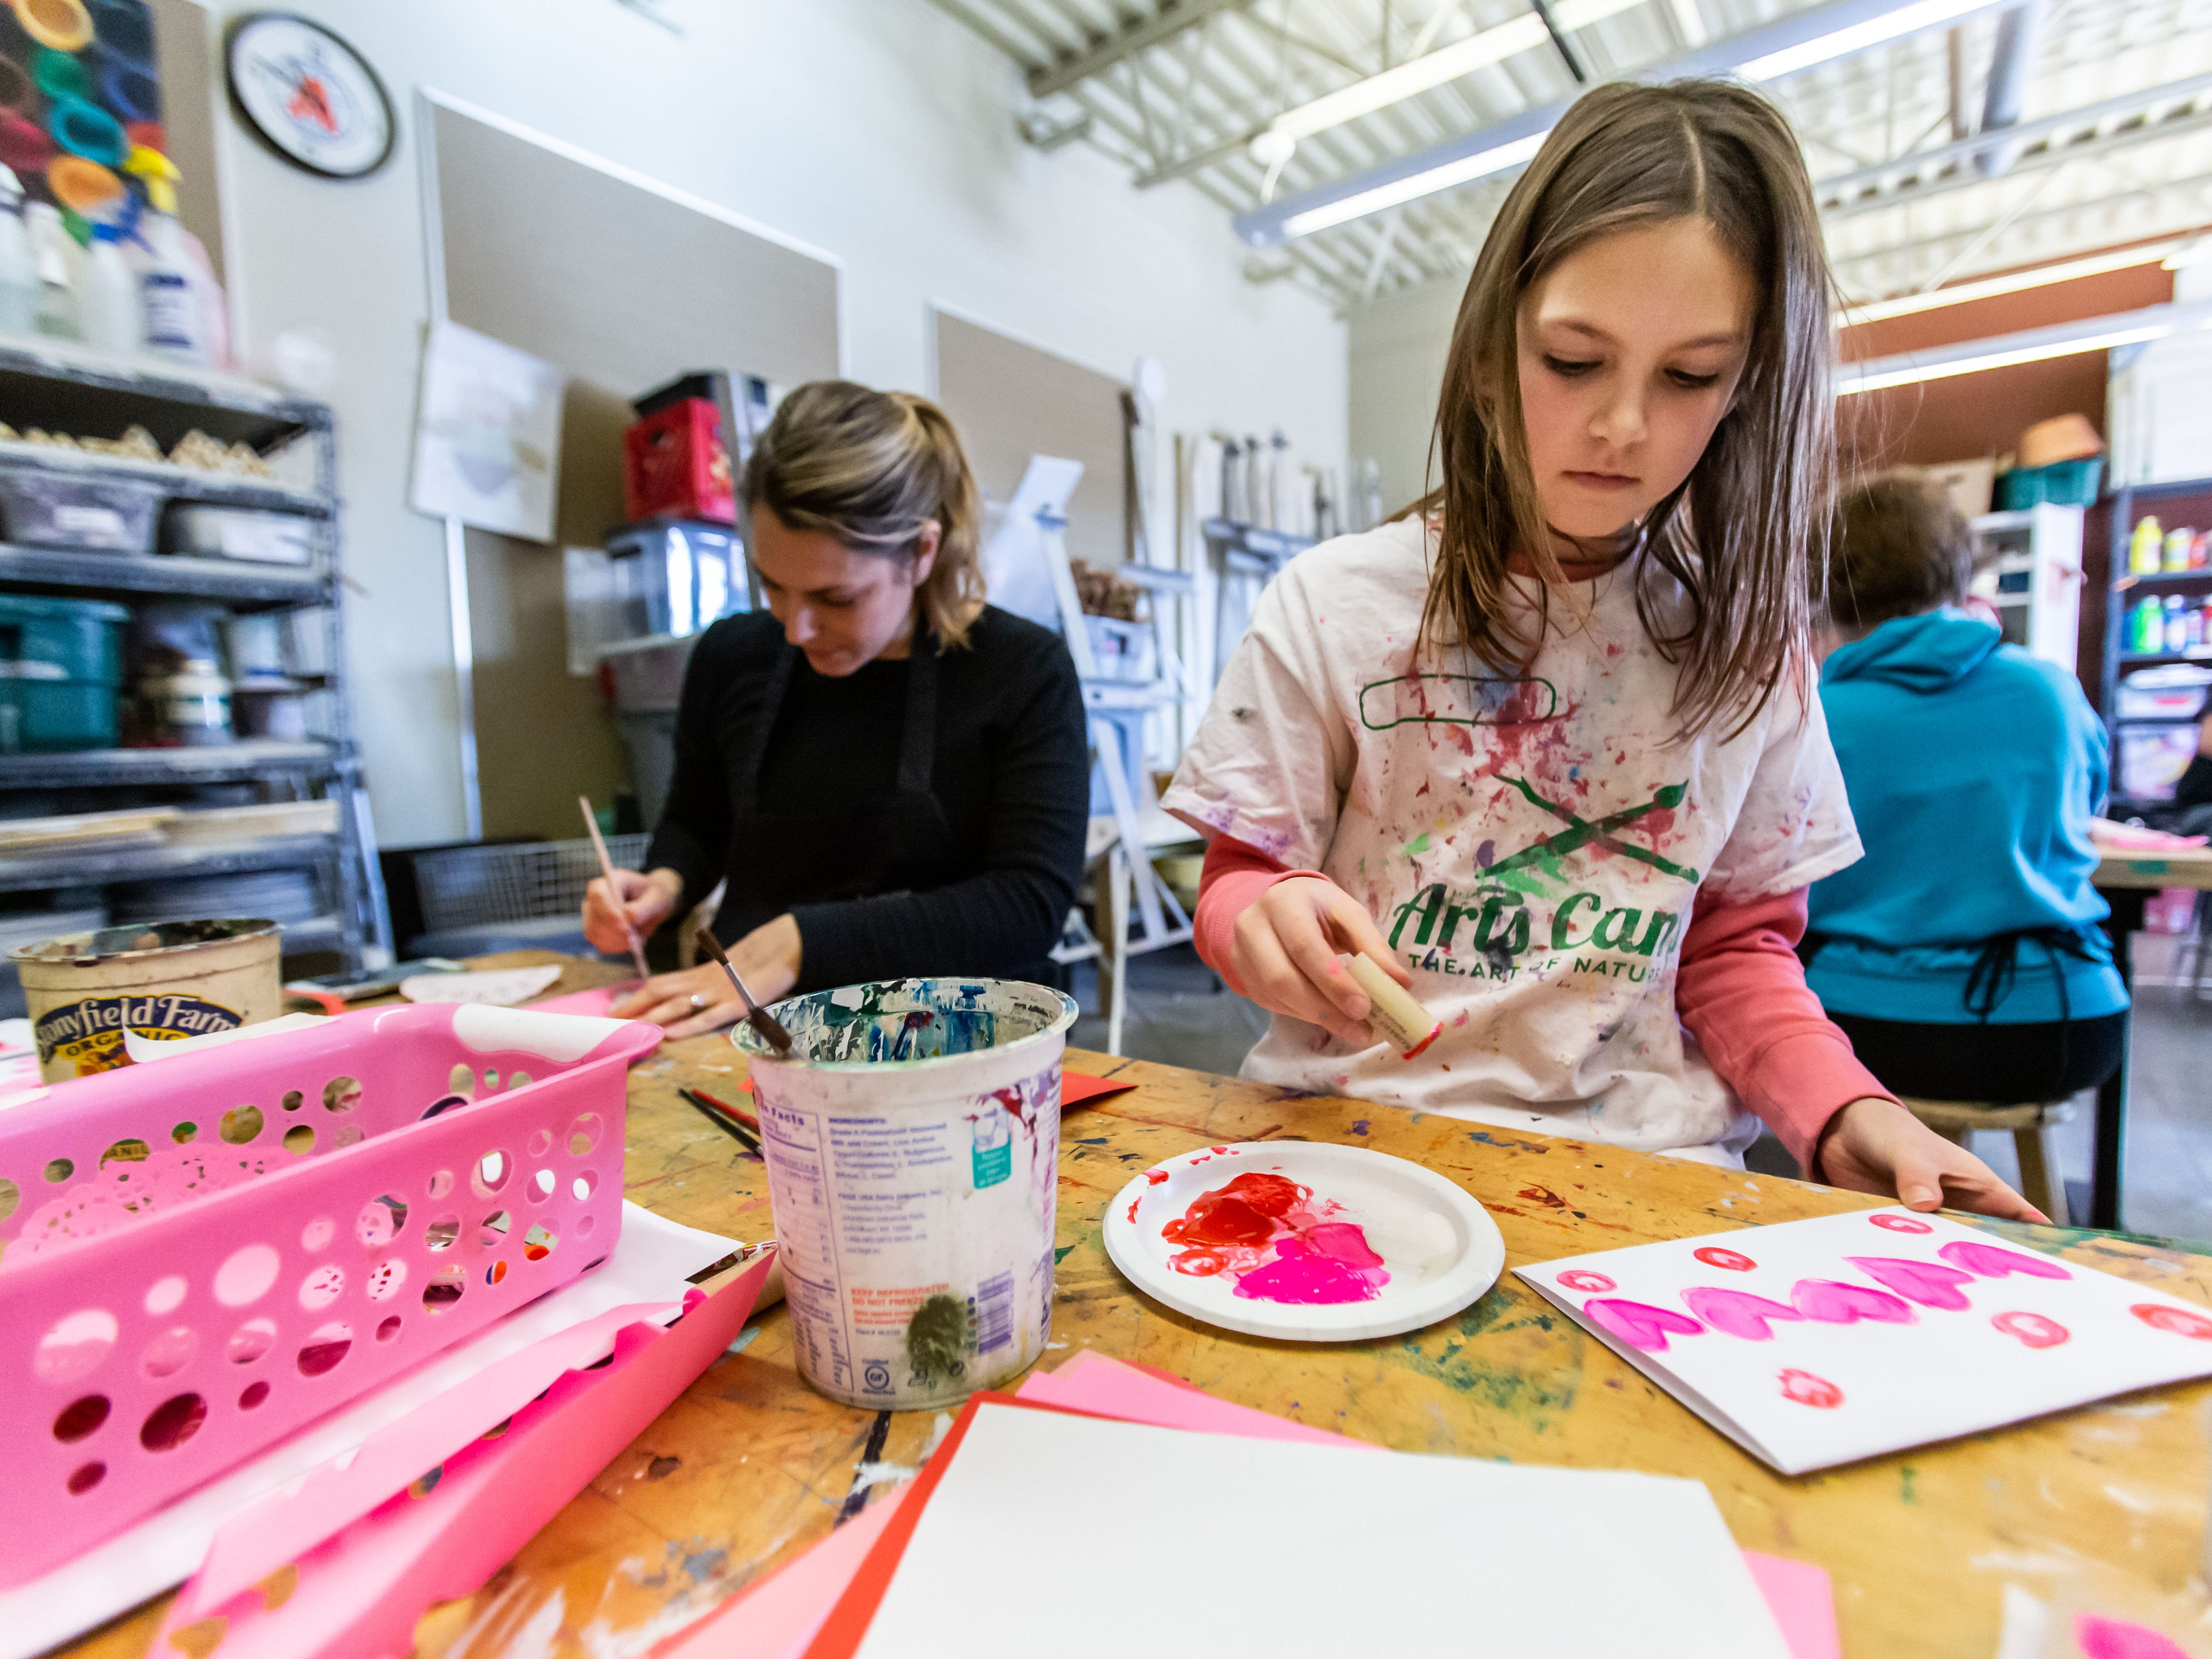 Lauren Miller, 9, of Menomonee Falls and her mother Jackie create printed Valentine's Day cards during the Free Family Art Workshop at the Sharon Lynne Wilson Center for the Arts in Brookfield on Saturday, Feb. 9, 2019. The free art workshops are held from 10 a.m. to noon on the second Saturday of each month. For more info visit wilson-center.com/classes.